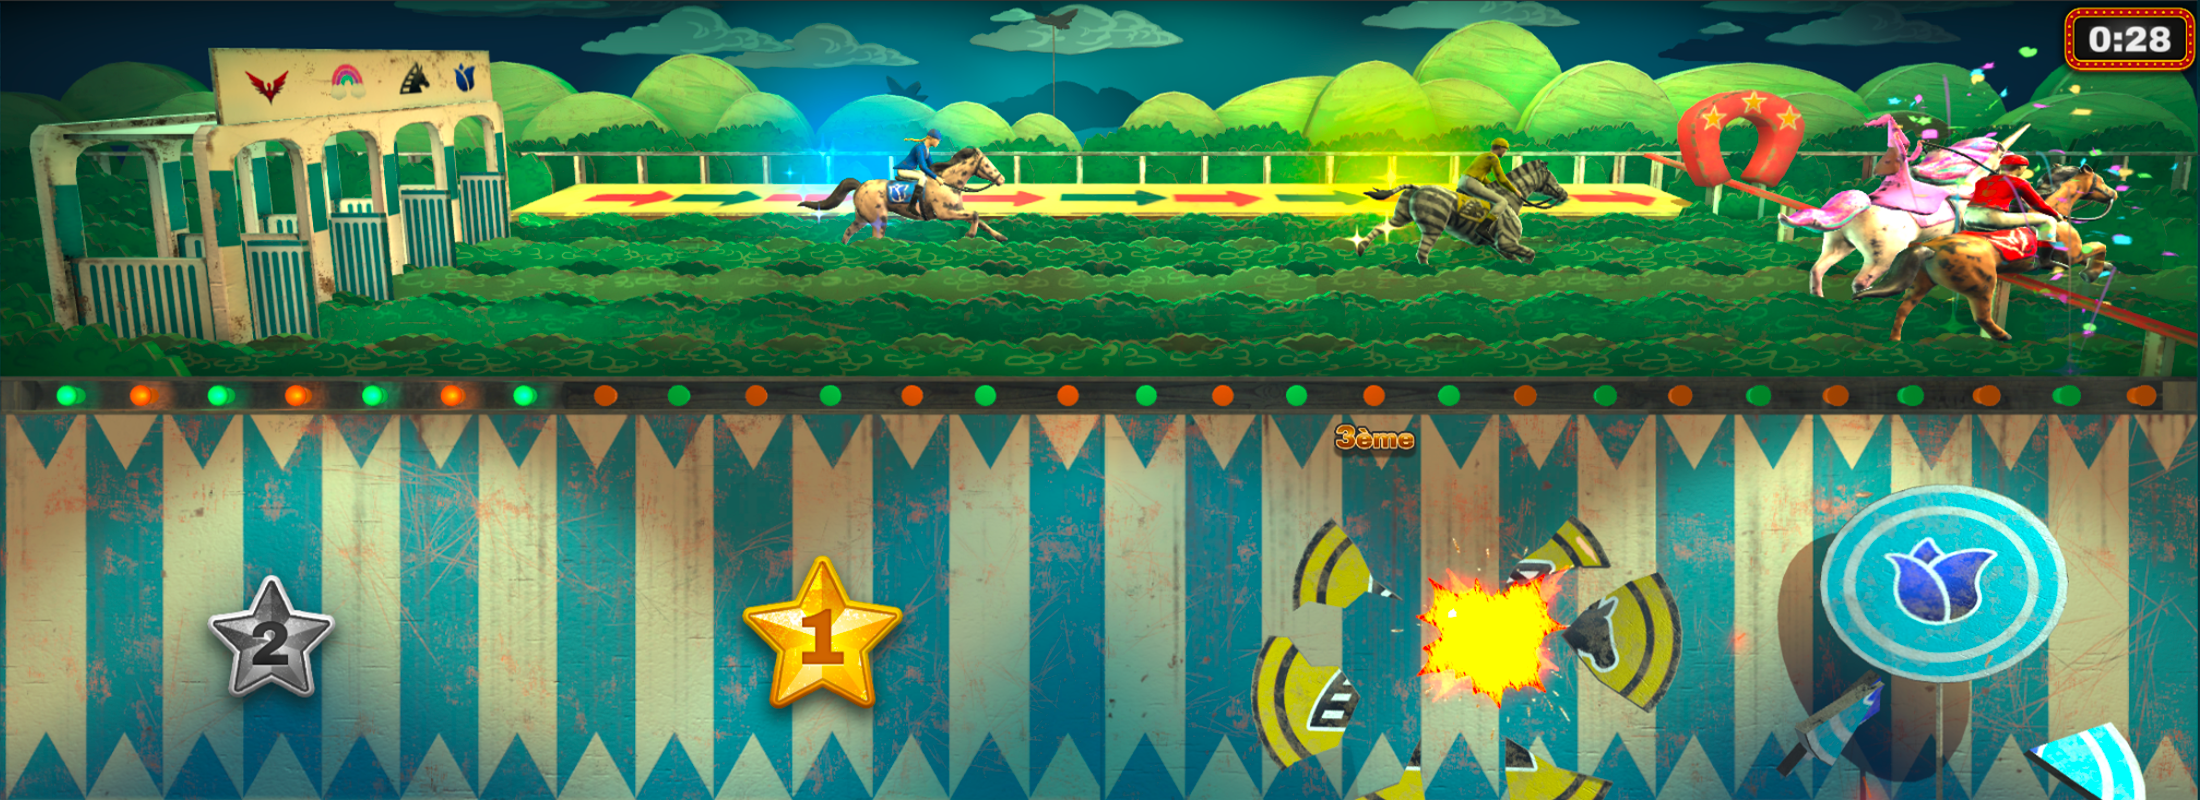 Wacky race gameplay picture 2